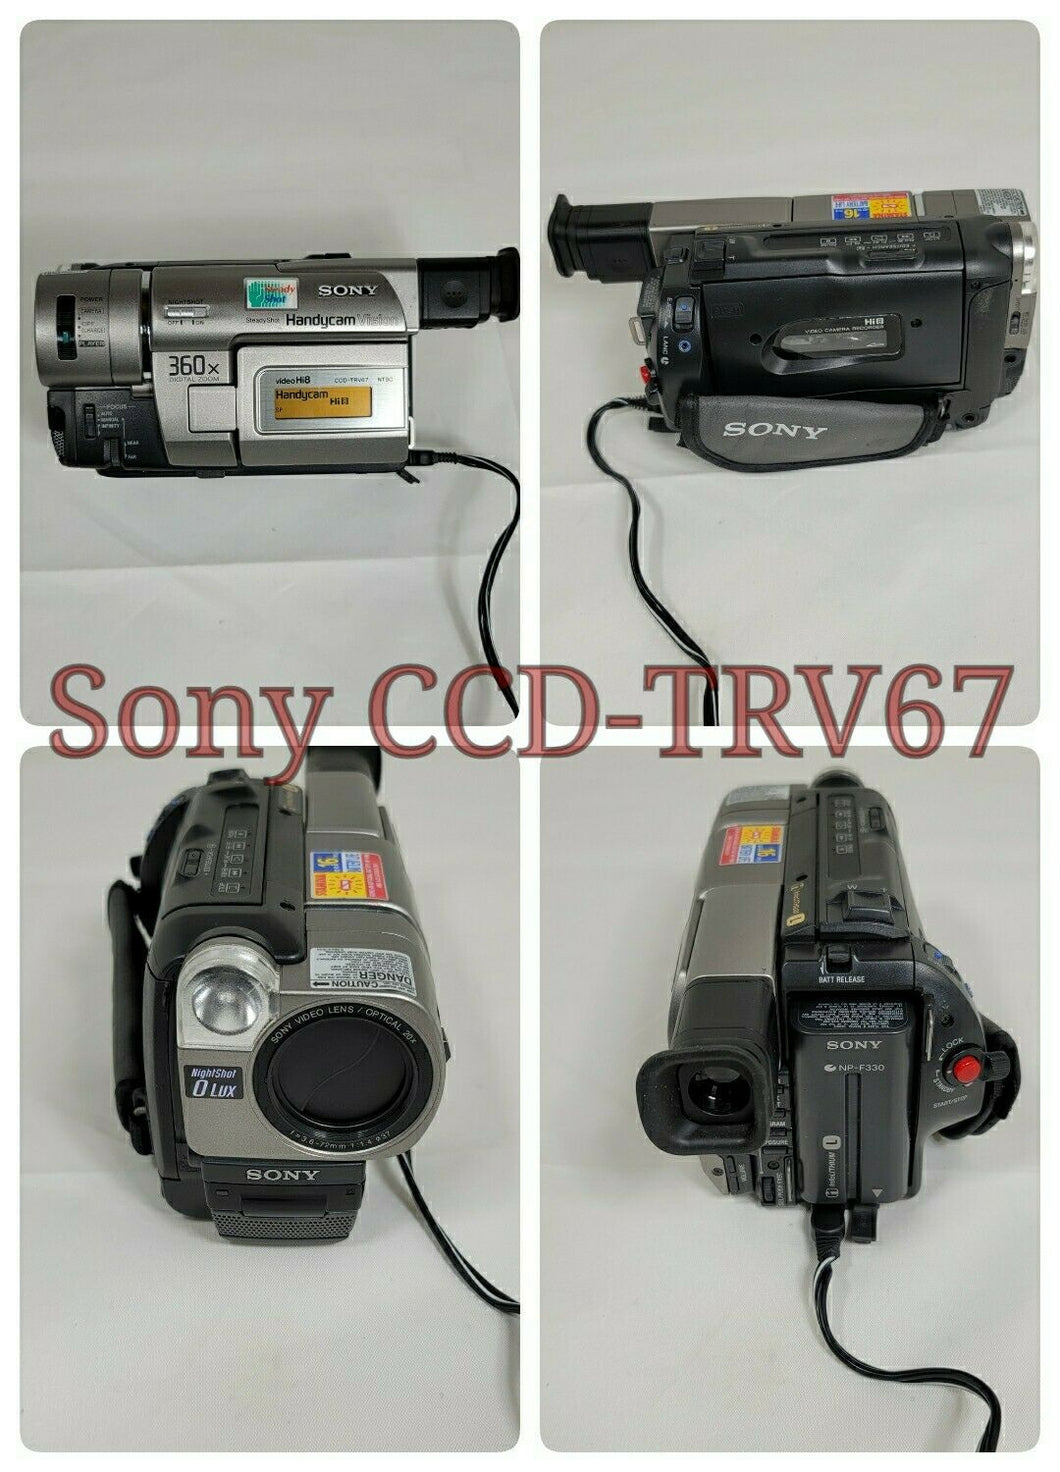 Sony CCD-TRV67 Hi8 heavy duty NTSC camcorder plays 8mm Hi8 analog tapes